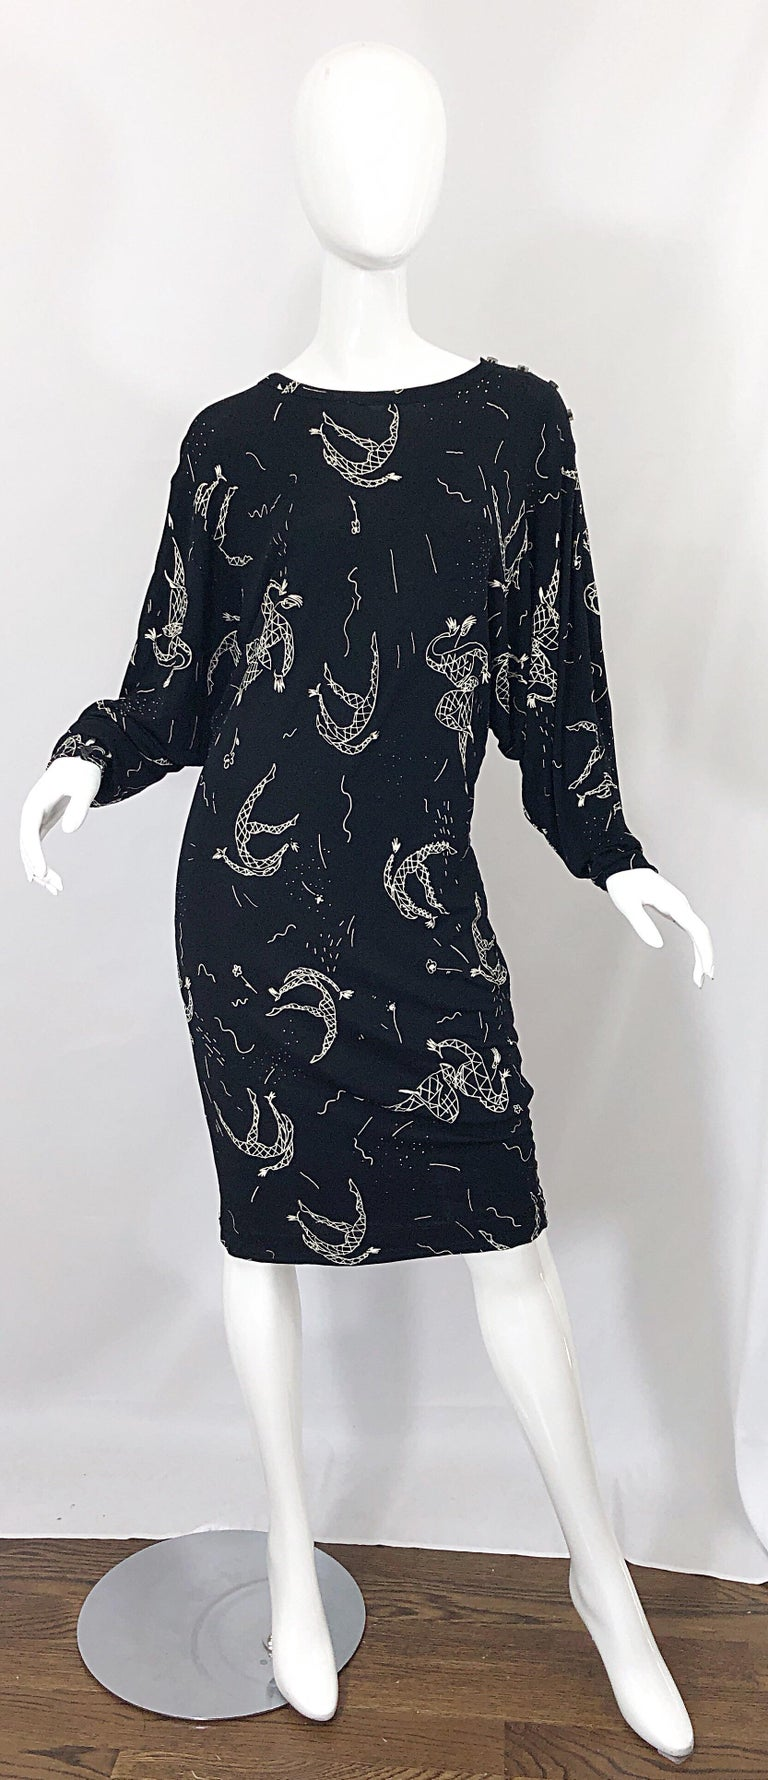 Extraordinary vintage mid 1980s AMEN WARDY black and white hand painted harlequin novelty print jersey dress! Features a stretch rayon jersey and dolman sleeve that can accomodate an array of sizes. Buttons at top left shoulder. Great belted or